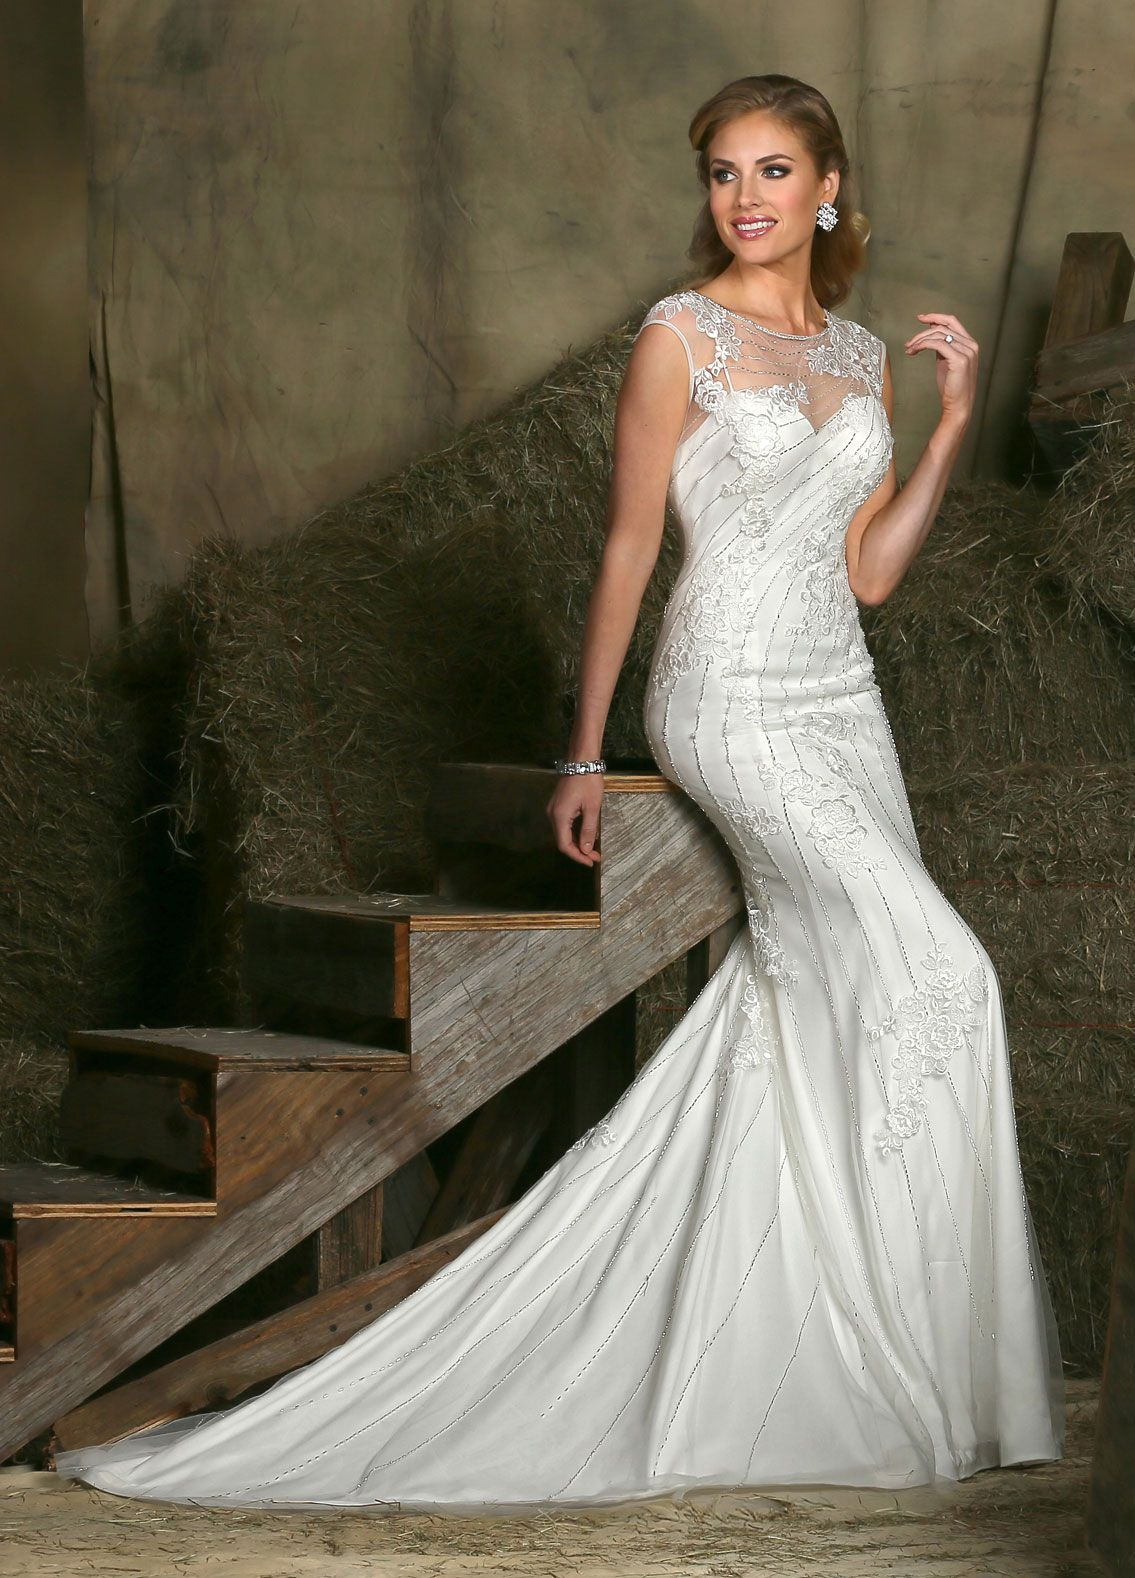 Radiate timeless class and sophistication in davinci bridalus